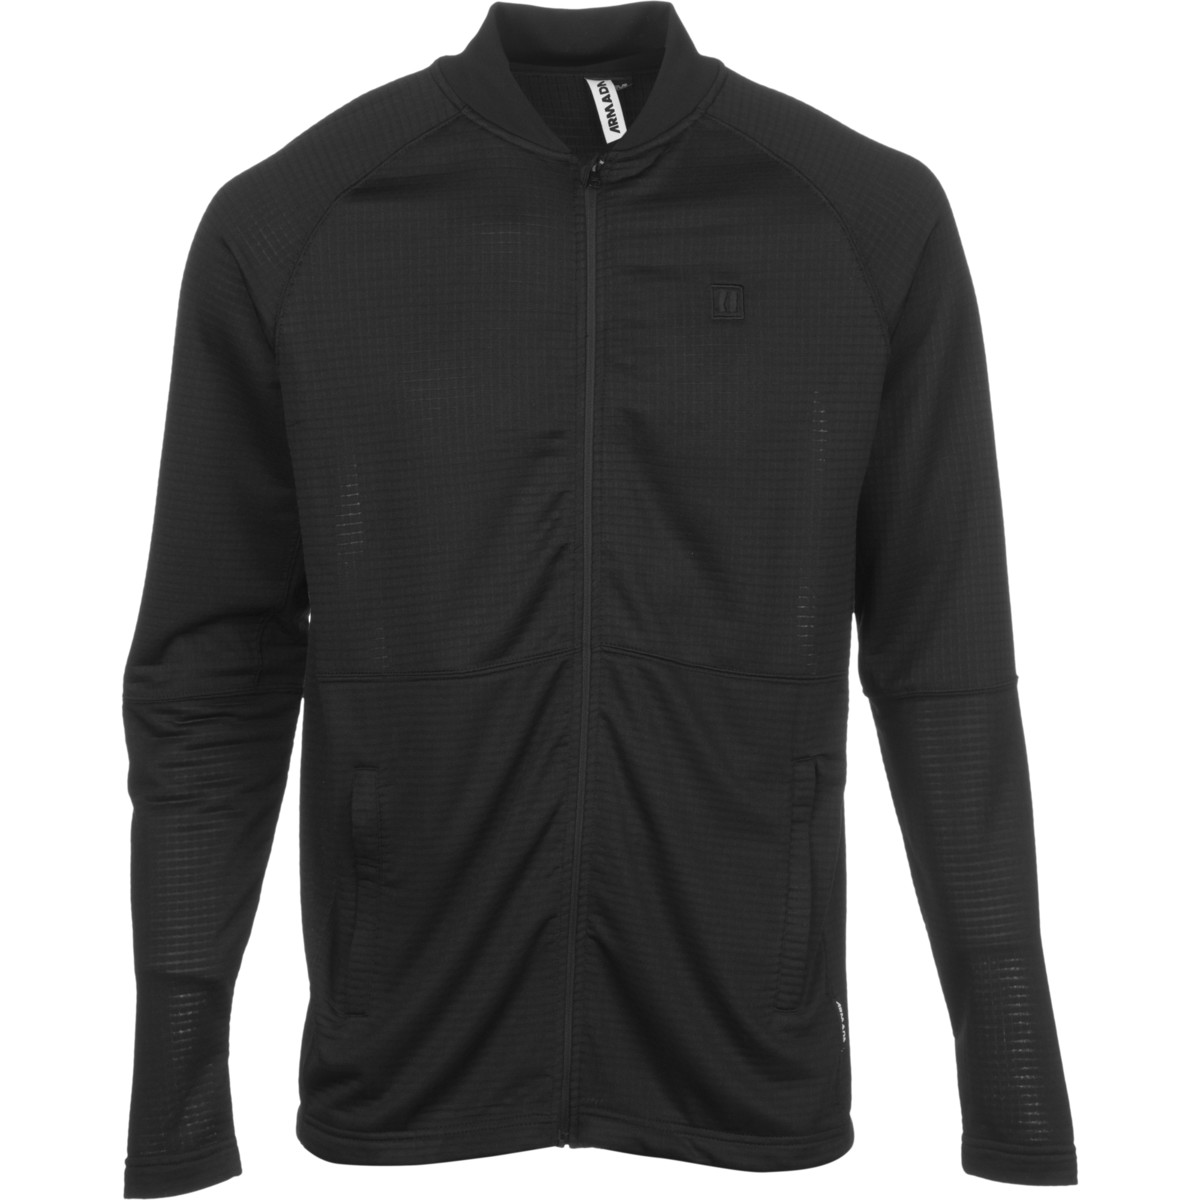 Armada Drifter Full-Zip Jacket